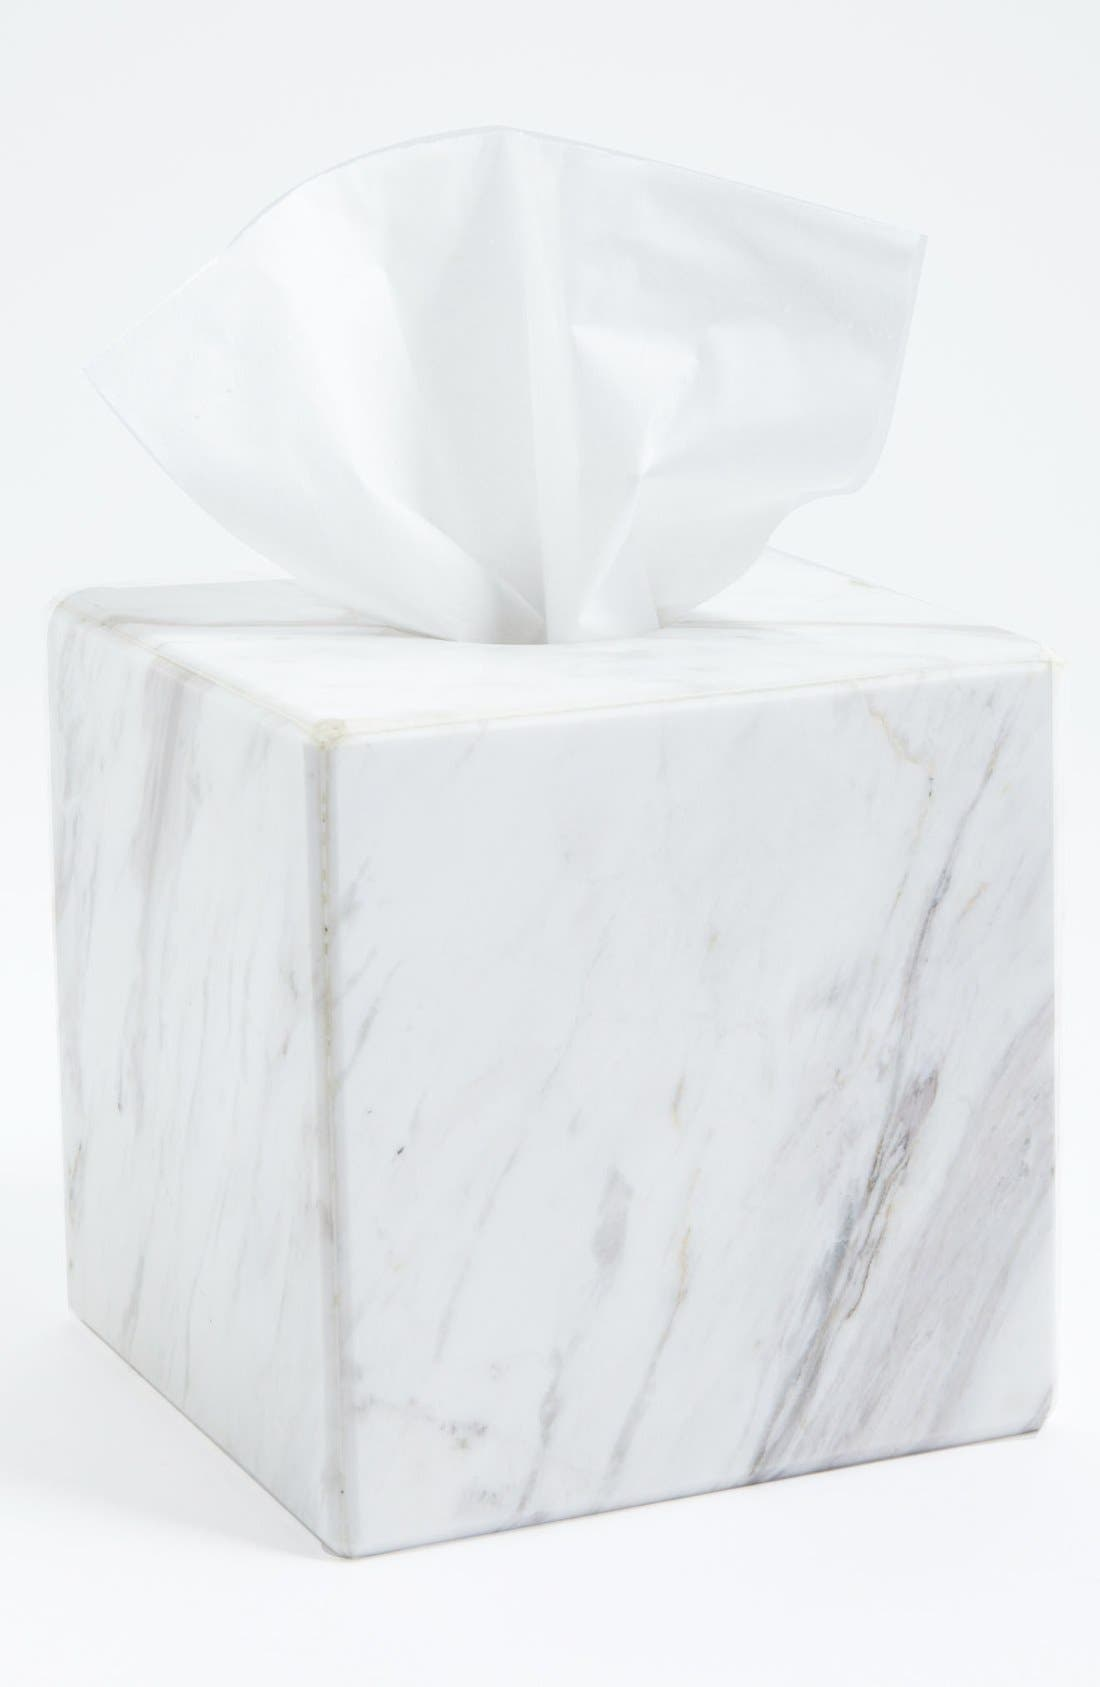 Main Image - Waterworks Studio 'Luna' White Marble Tissue Cover (Online Only)